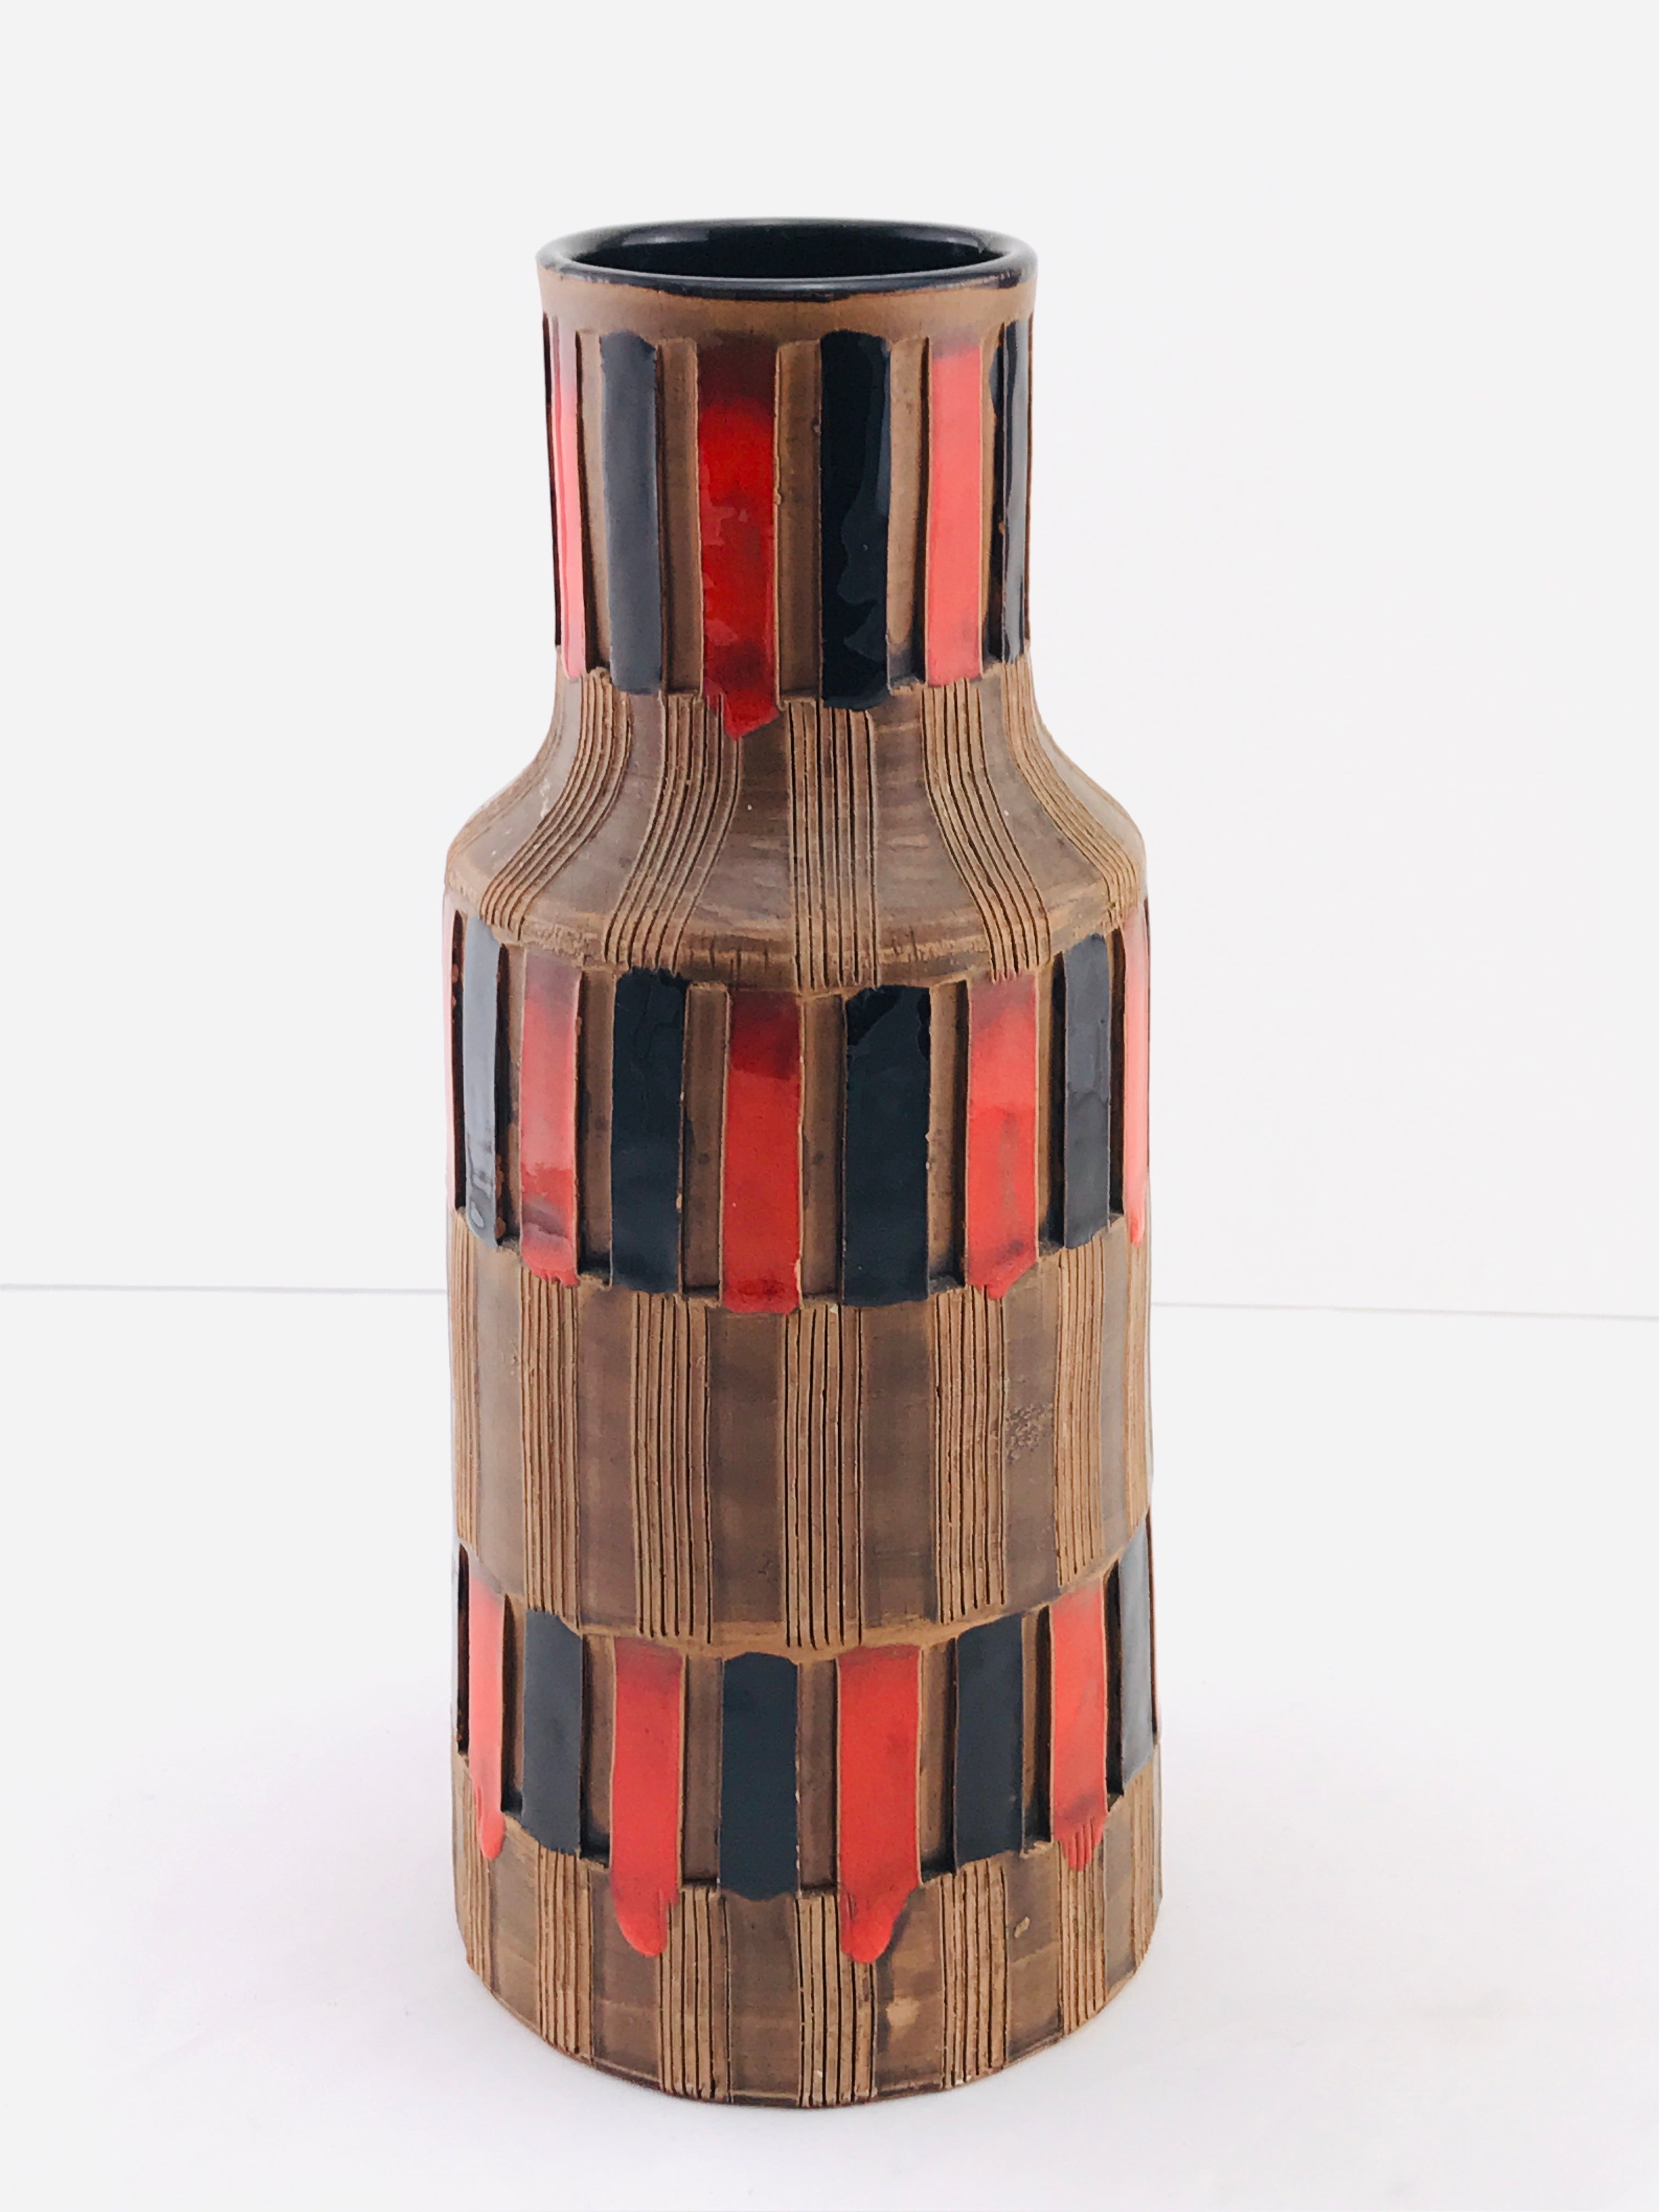 Mid-Century Modern Italian Bitossi Red and Black Ceramic Vase, 1960